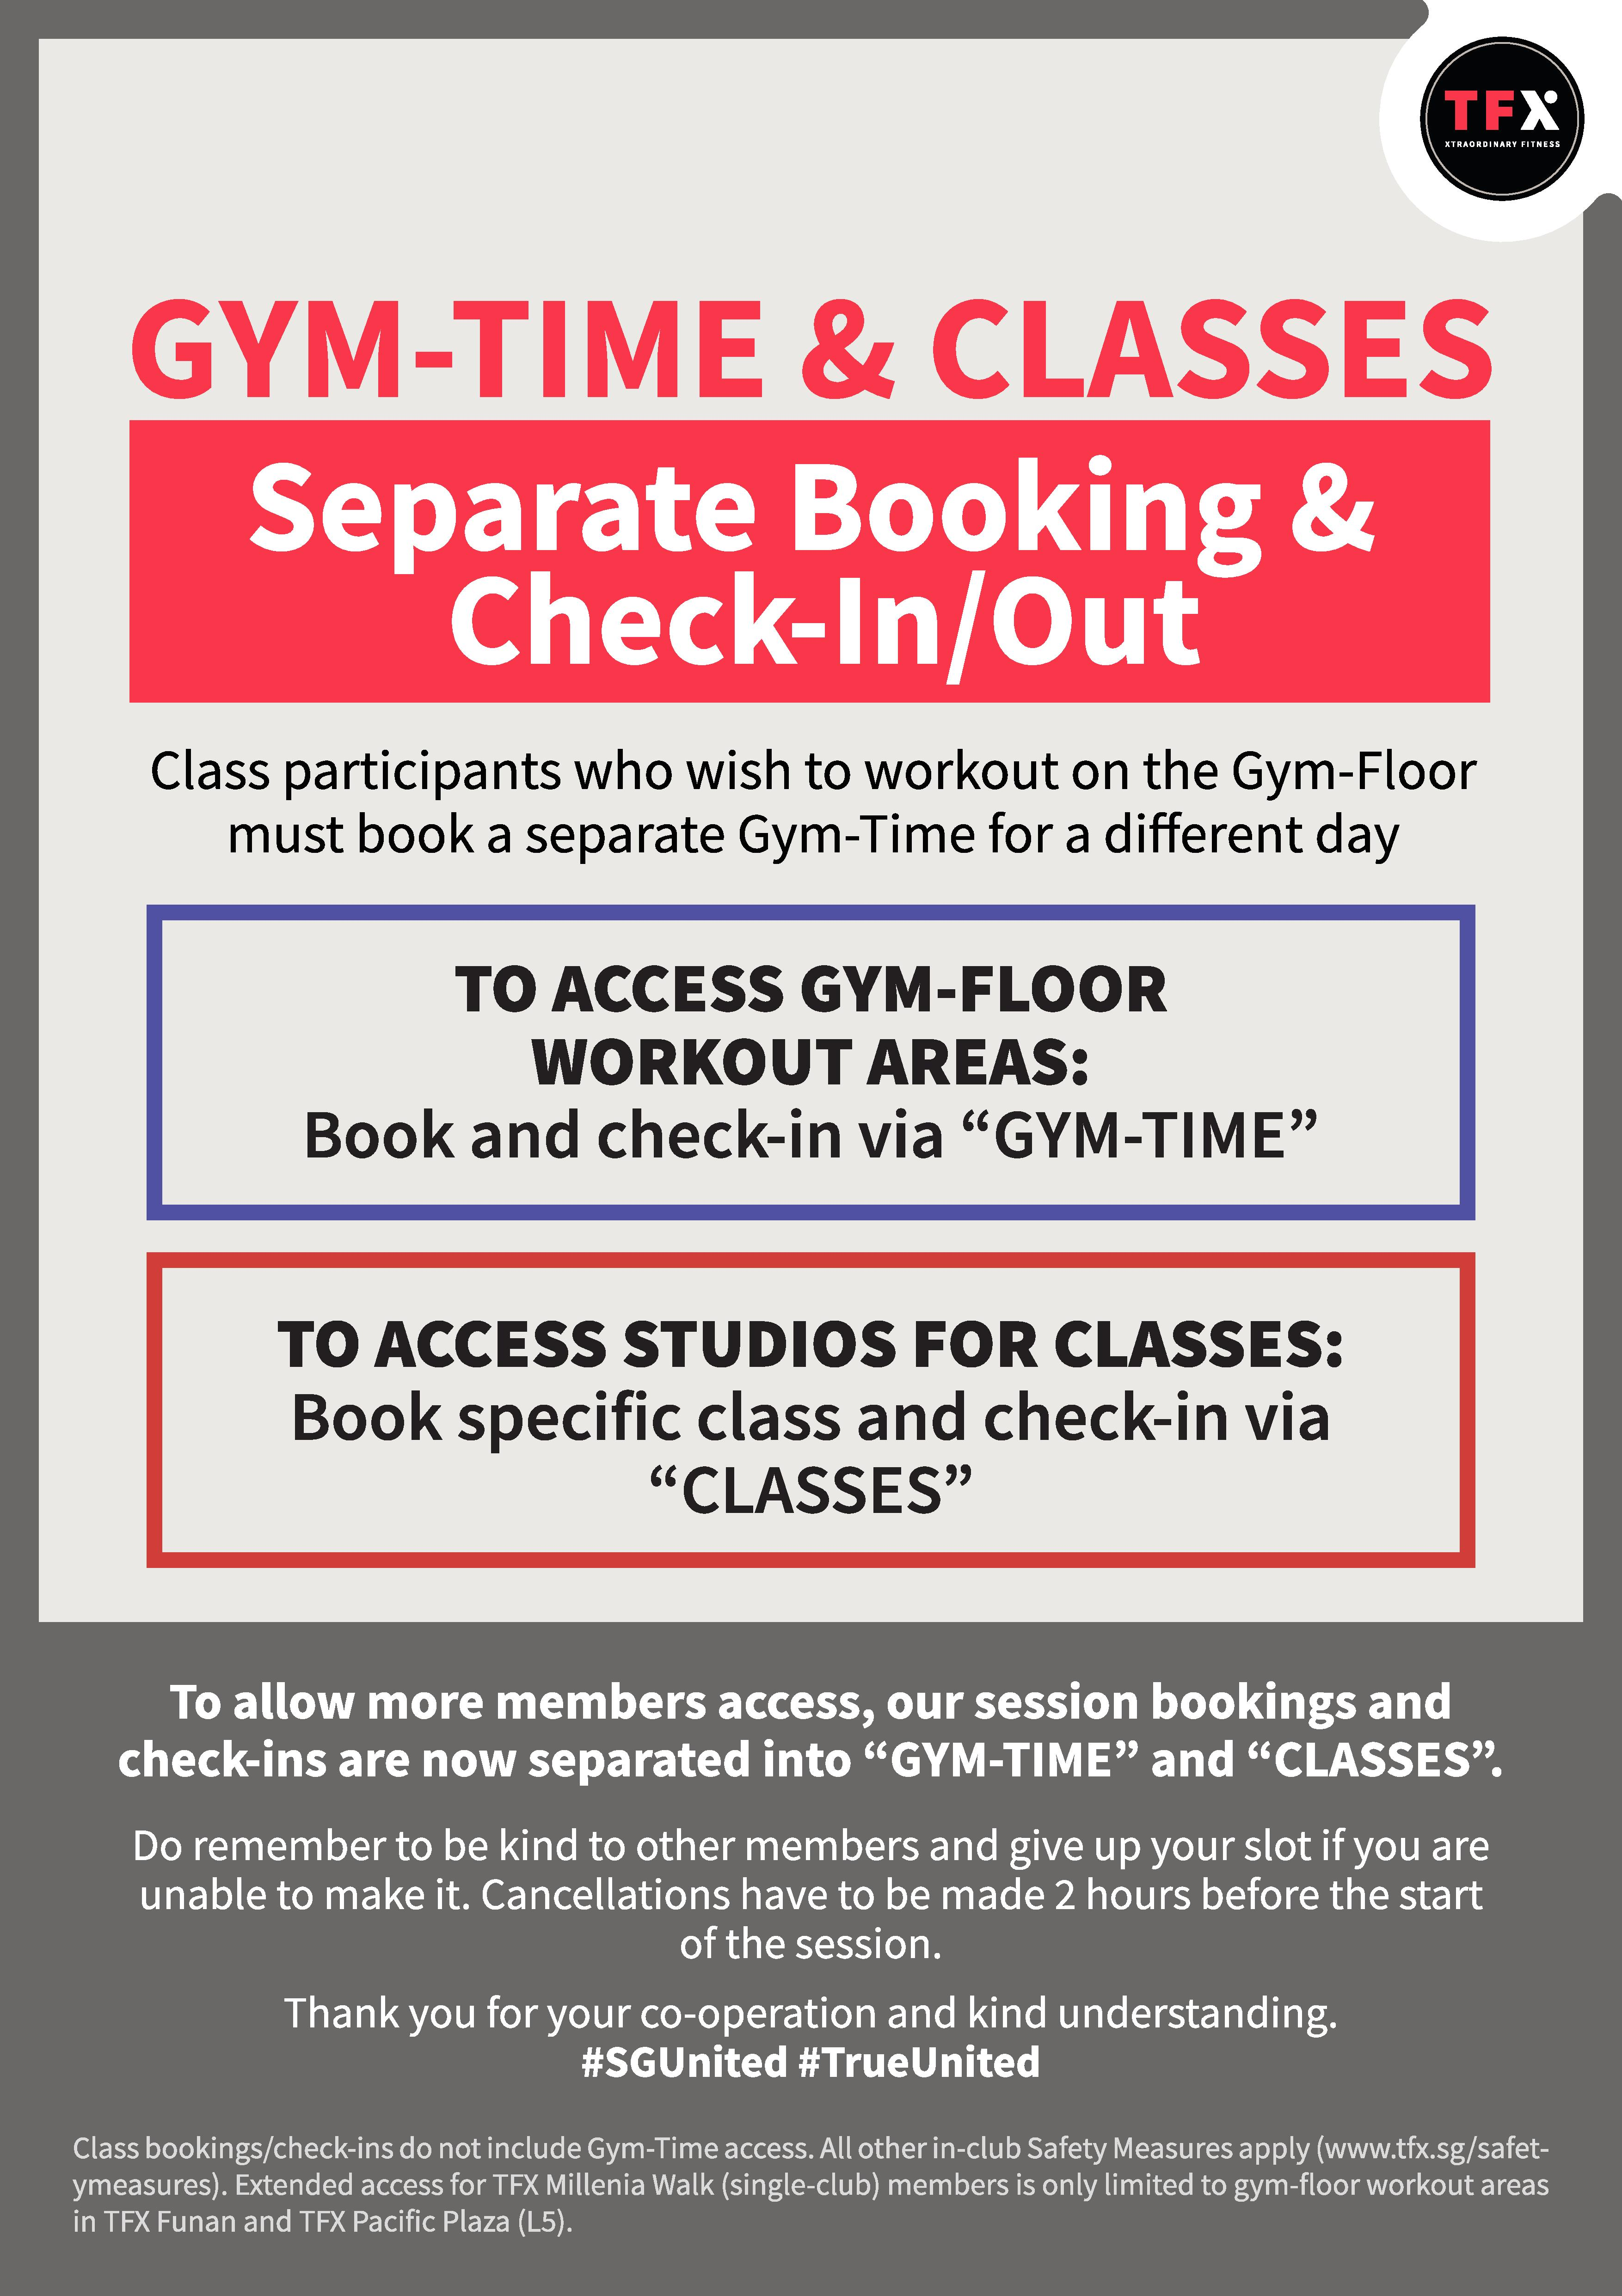 GYM-TIME & CLASSES: Separate Booking & Check-In/Out